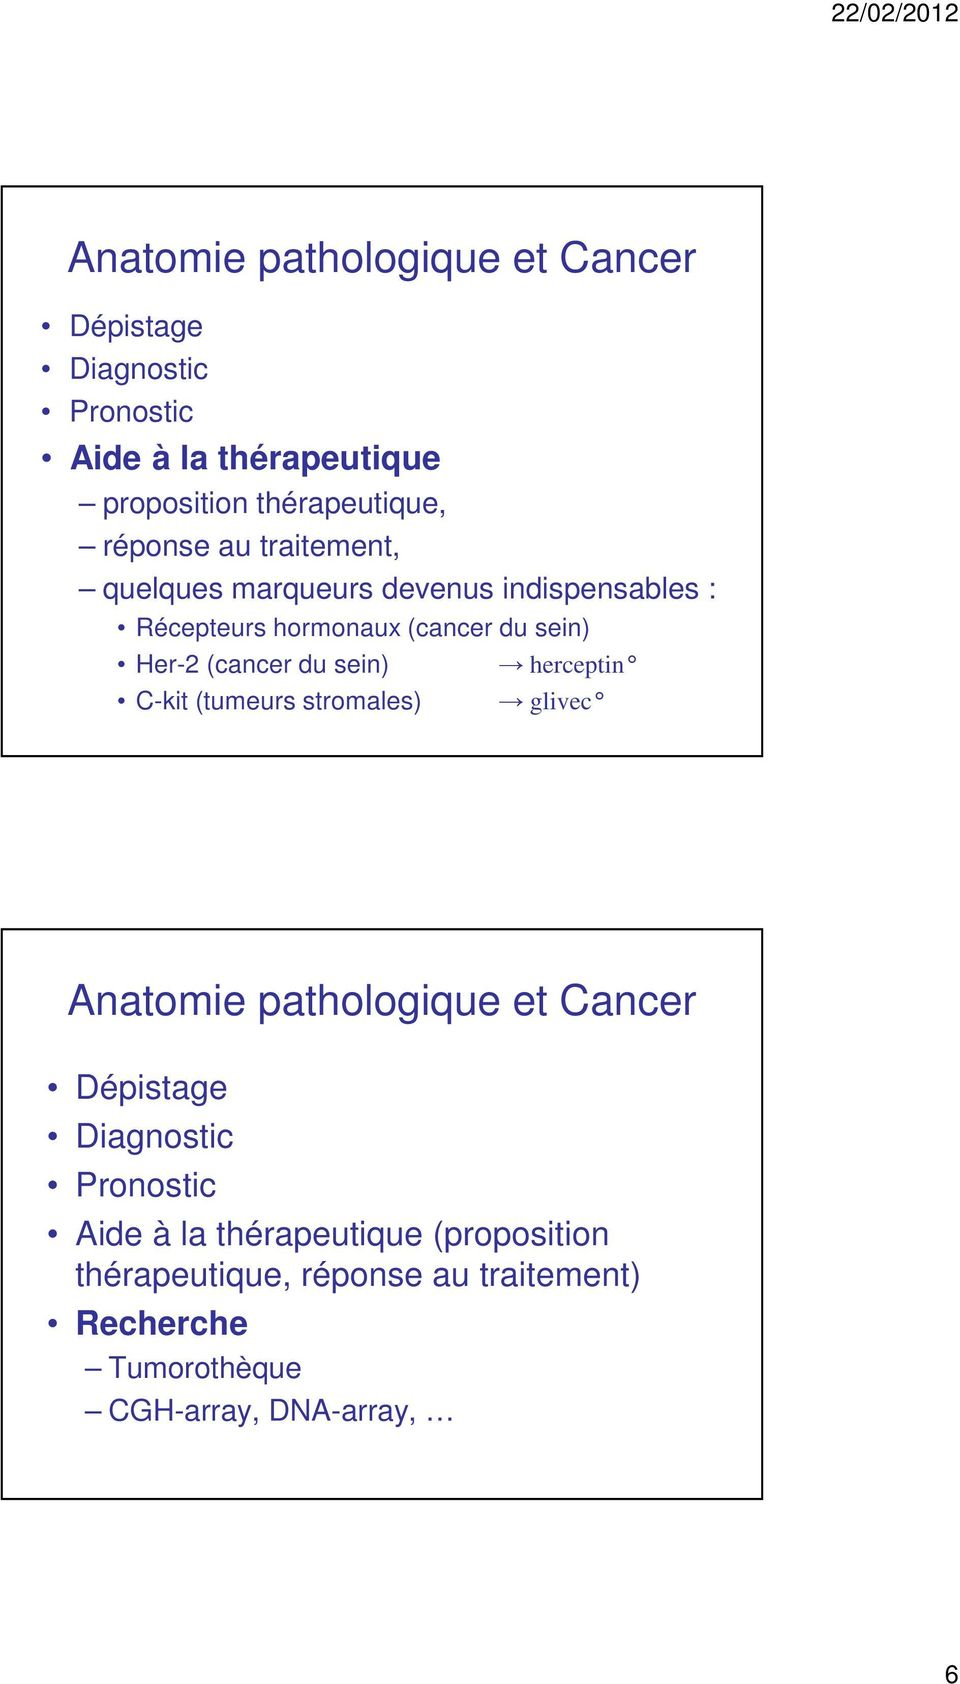 anatomie pathologique et cancer missions moyens exemples pdf. Black Bedroom Furniture Sets. Home Design Ideas